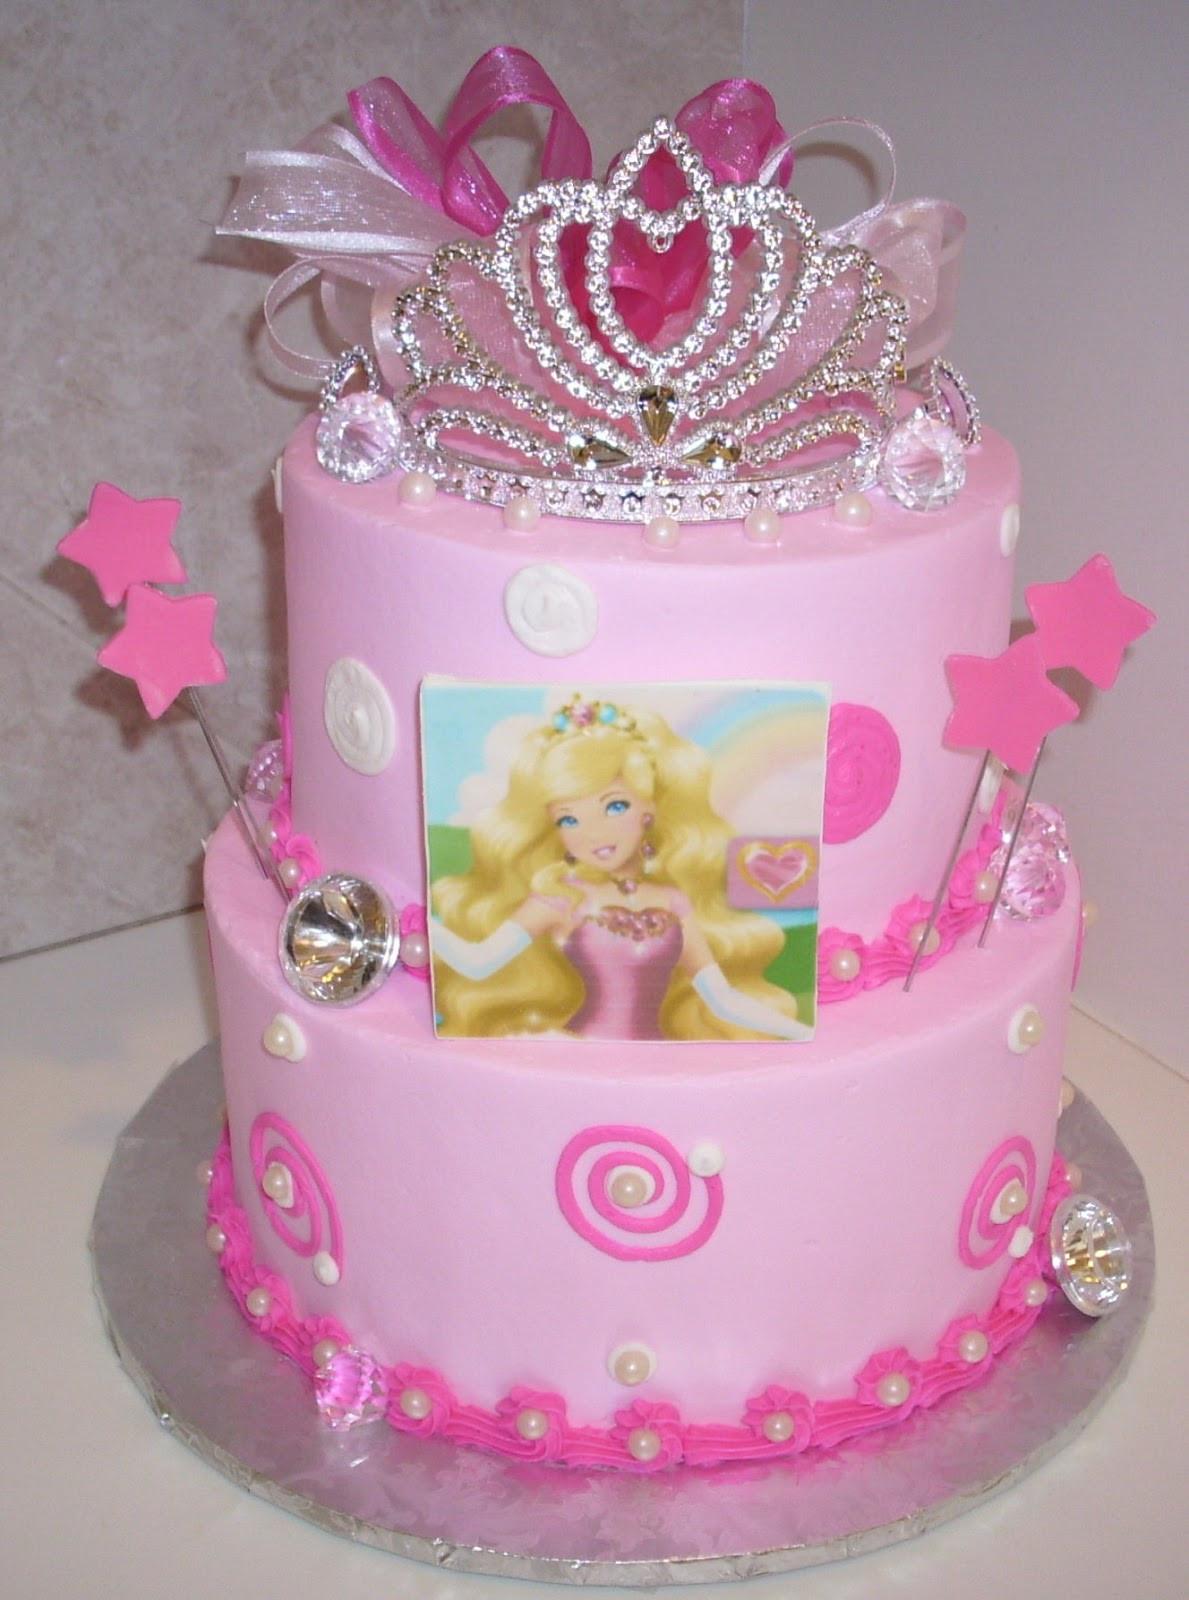 Best ideas about Kids Birthday Cake . Save or Pin Kids Birthday Cakes Birthday Now.